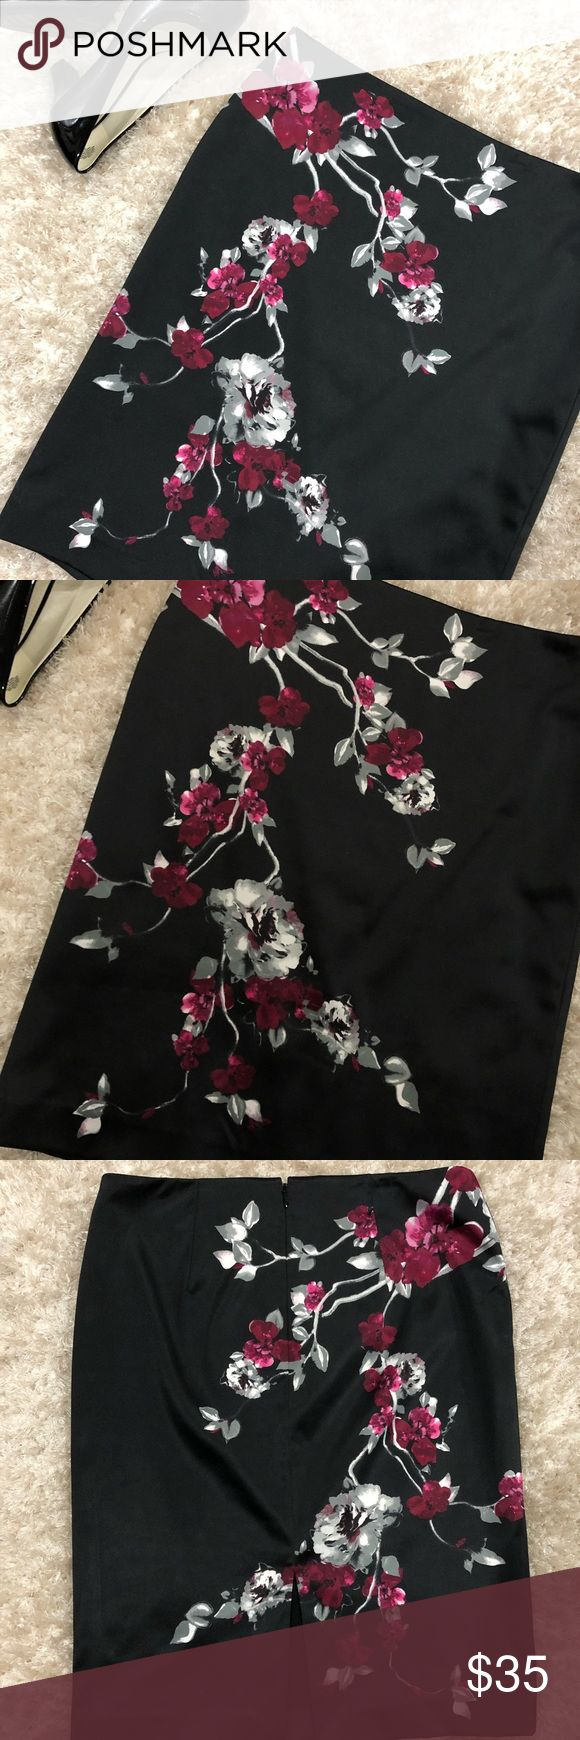 "WHBM Floral Black Pencil MIDI Skirt size 6 Waist: 16"" Length: 22""  Gorgeous skirt NWOT Has a 7"" opening in the back   Sits above hip bone  Please let me know if you have any questions White House Black Market Skirts Midi"